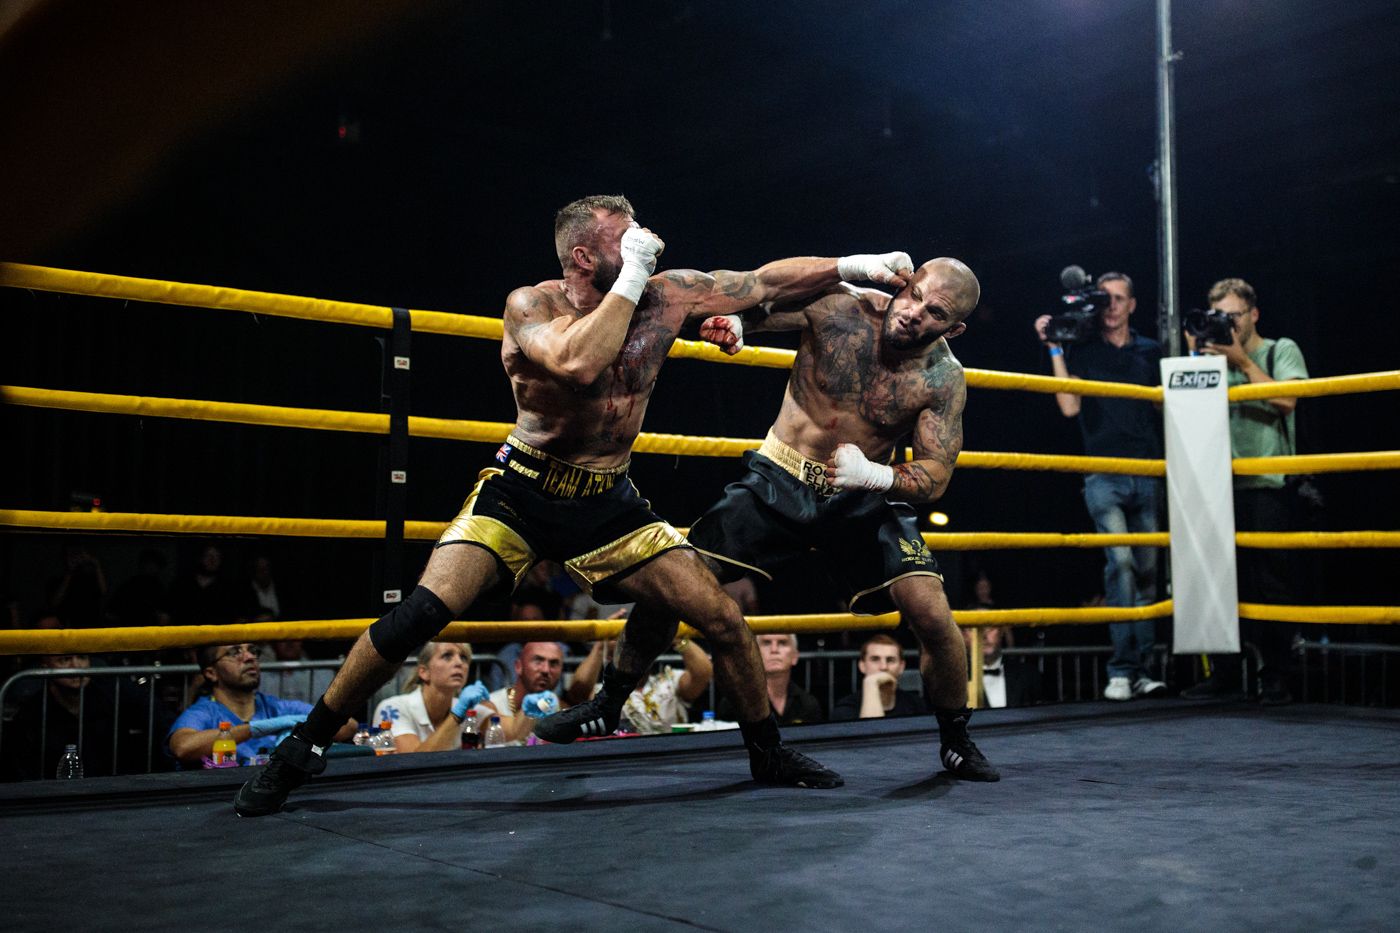 MANCHESTER, ENGLAND Two-time World Bare-Knuckle Boxing Champion Luke Atkin, age 30 from York (L) takes on Dom Clark, 35 from Bournemouth for the Rogue Elite world title at an Ultimate Bare Knuckle Boxing (UBKB) fight at Bowlers Exhibition Centre on August 4, 2018.